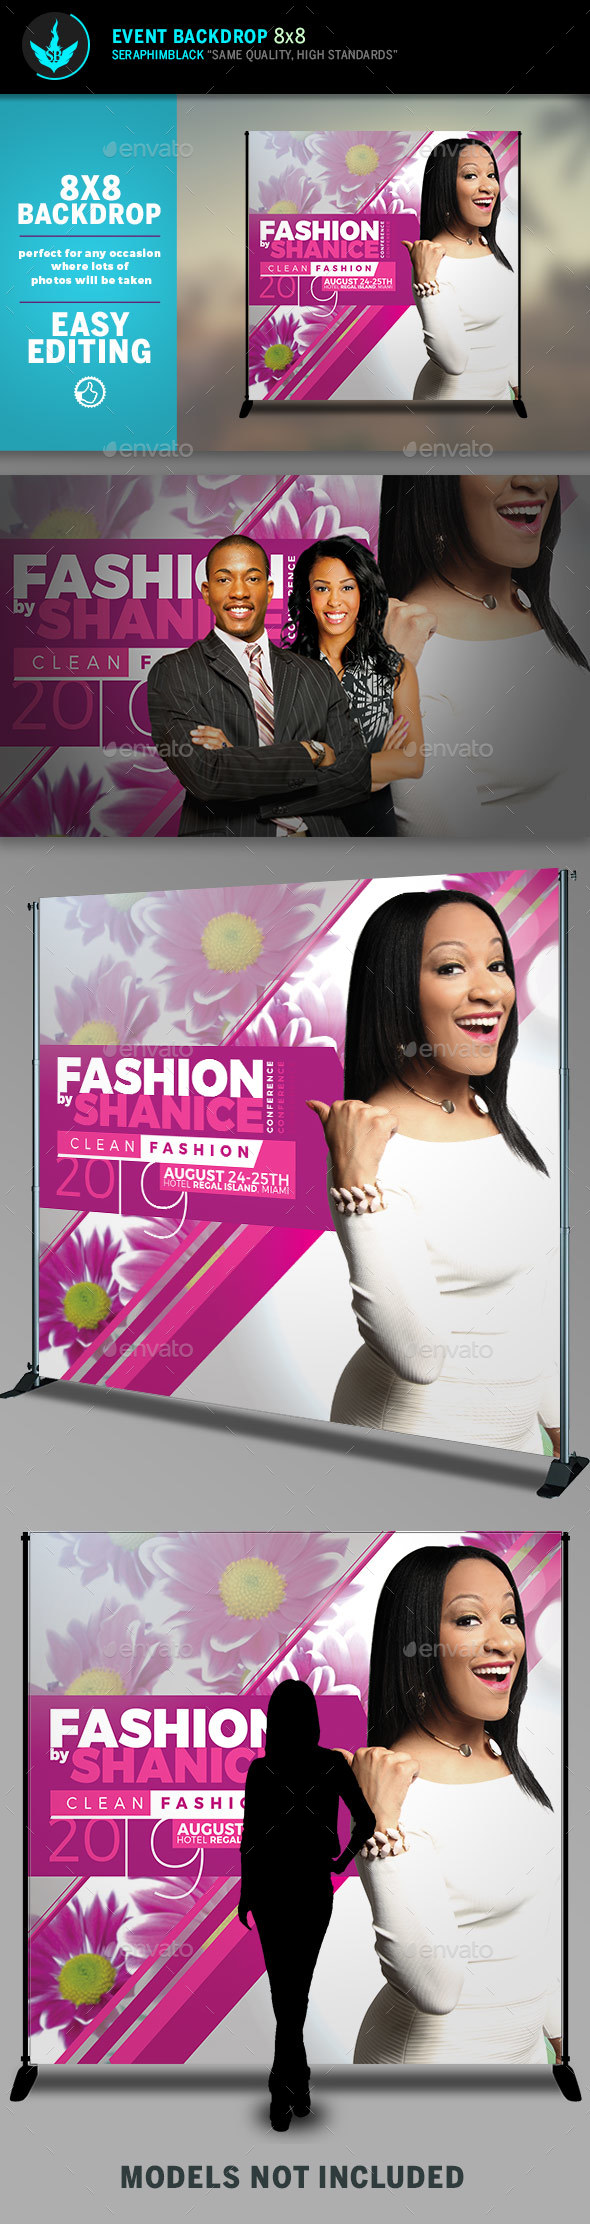 Fashion Conference 8x8 Event Backdrop Template - Signage Print Templates